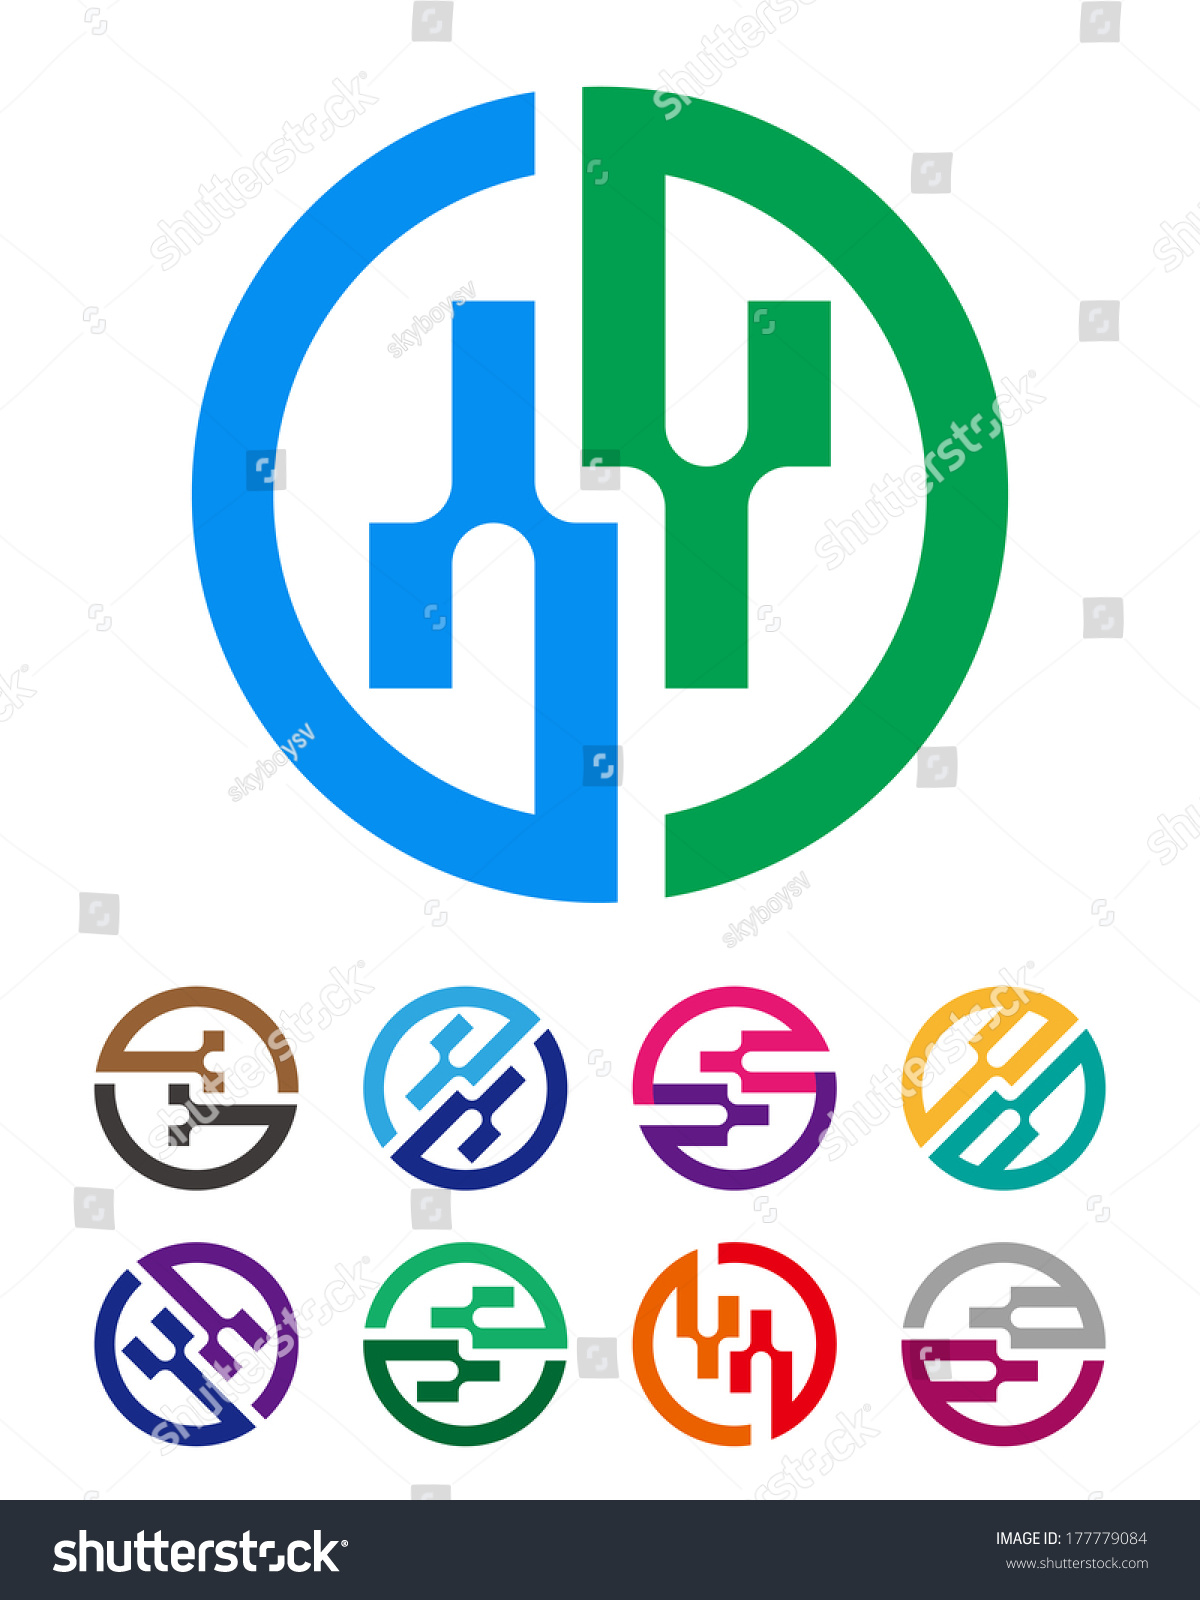 Abstract Round Logo Element G B Stock Vector Royalty Free Electronic Integrated Circuit Chip Image 177779084 Shutterstock